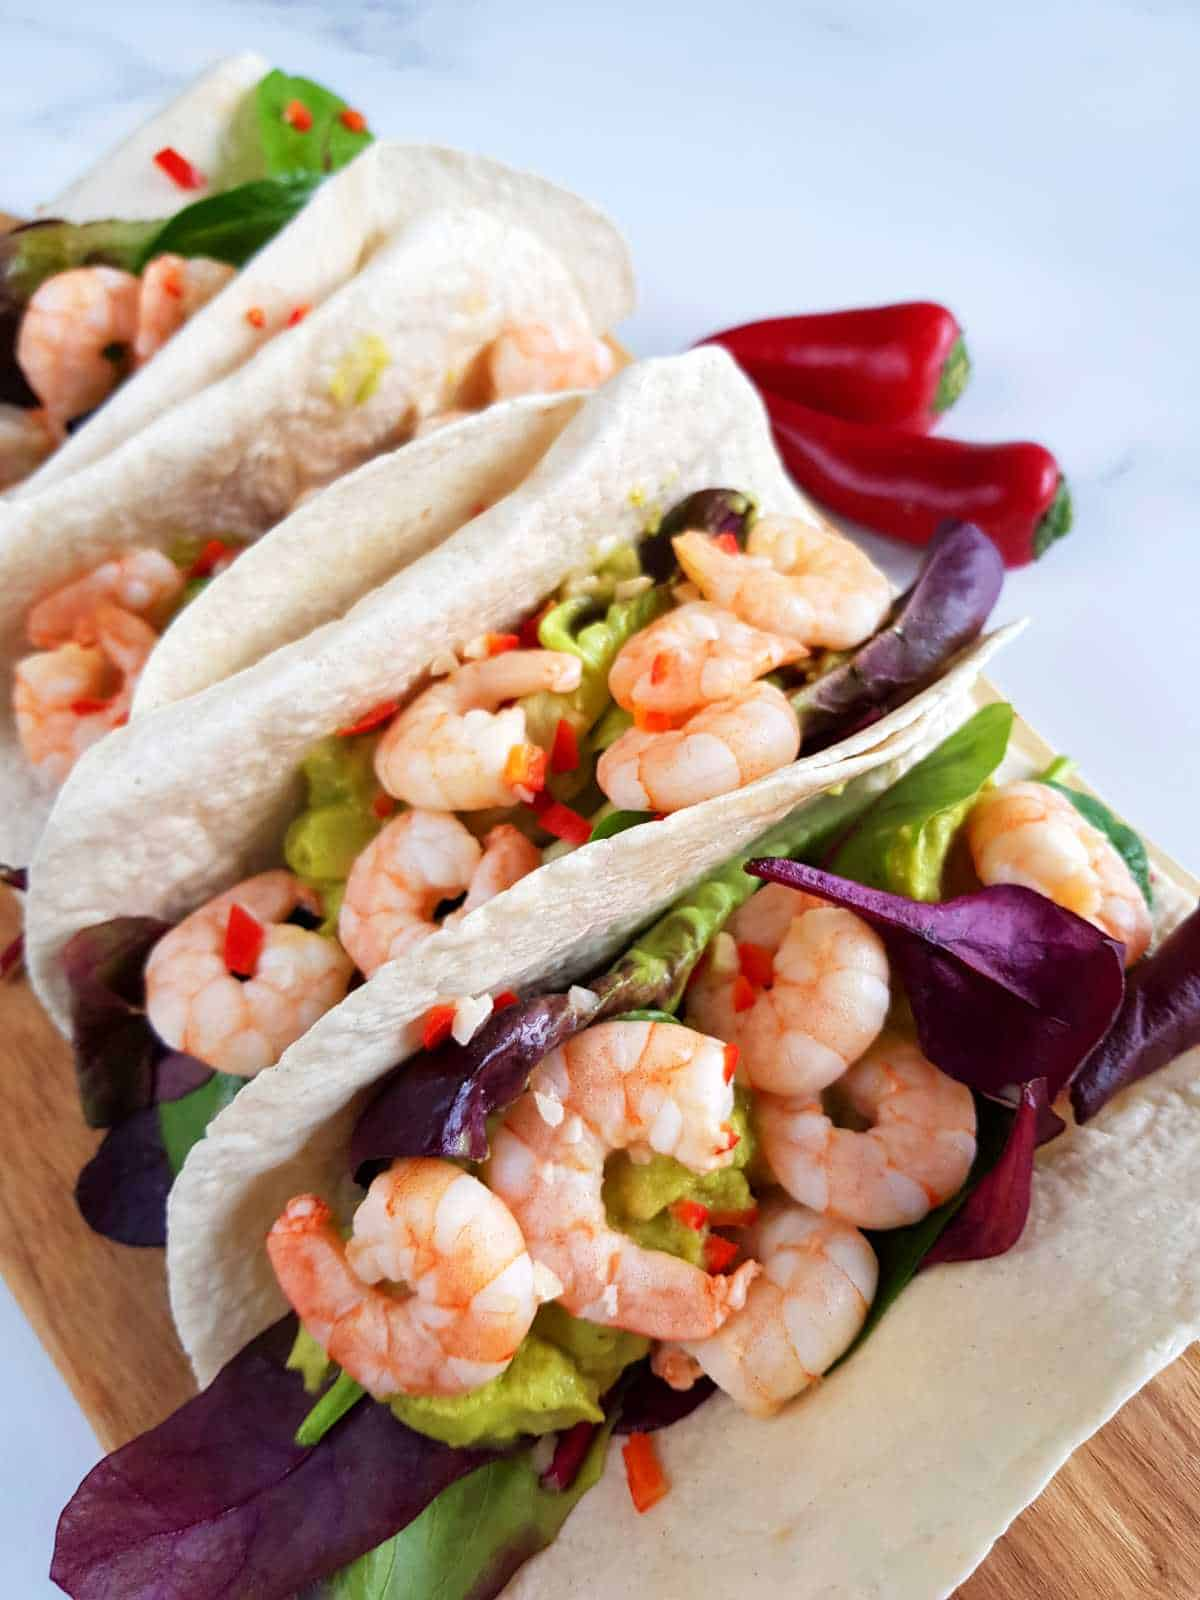 Lime and chili shrimp tacos with fresh chilies on the side.